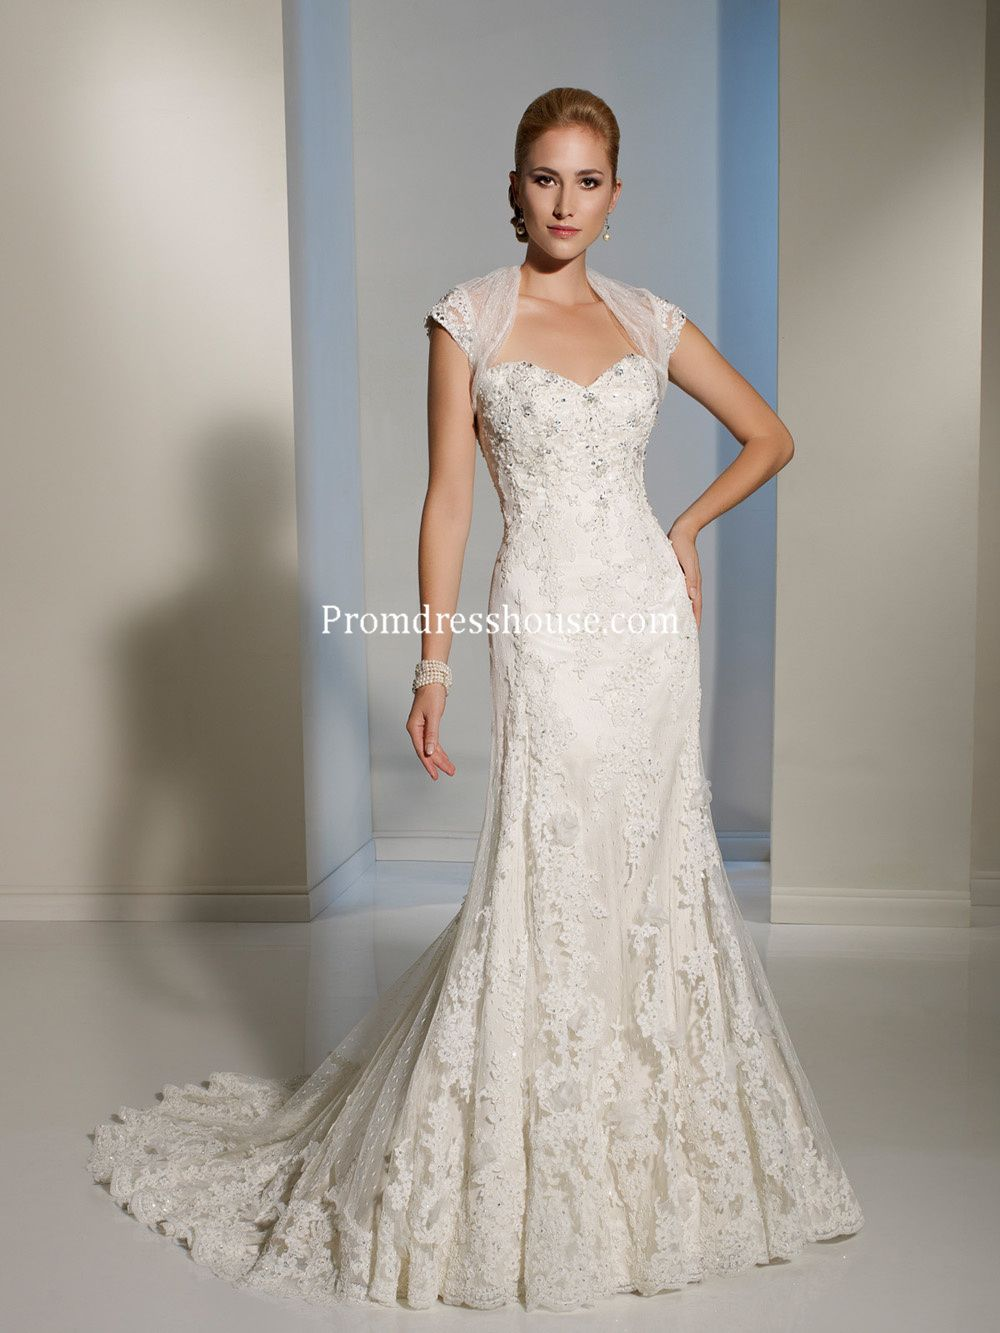 With A Wrap Applique Beading Lace Mermaid Wedding Dress | Bride ...